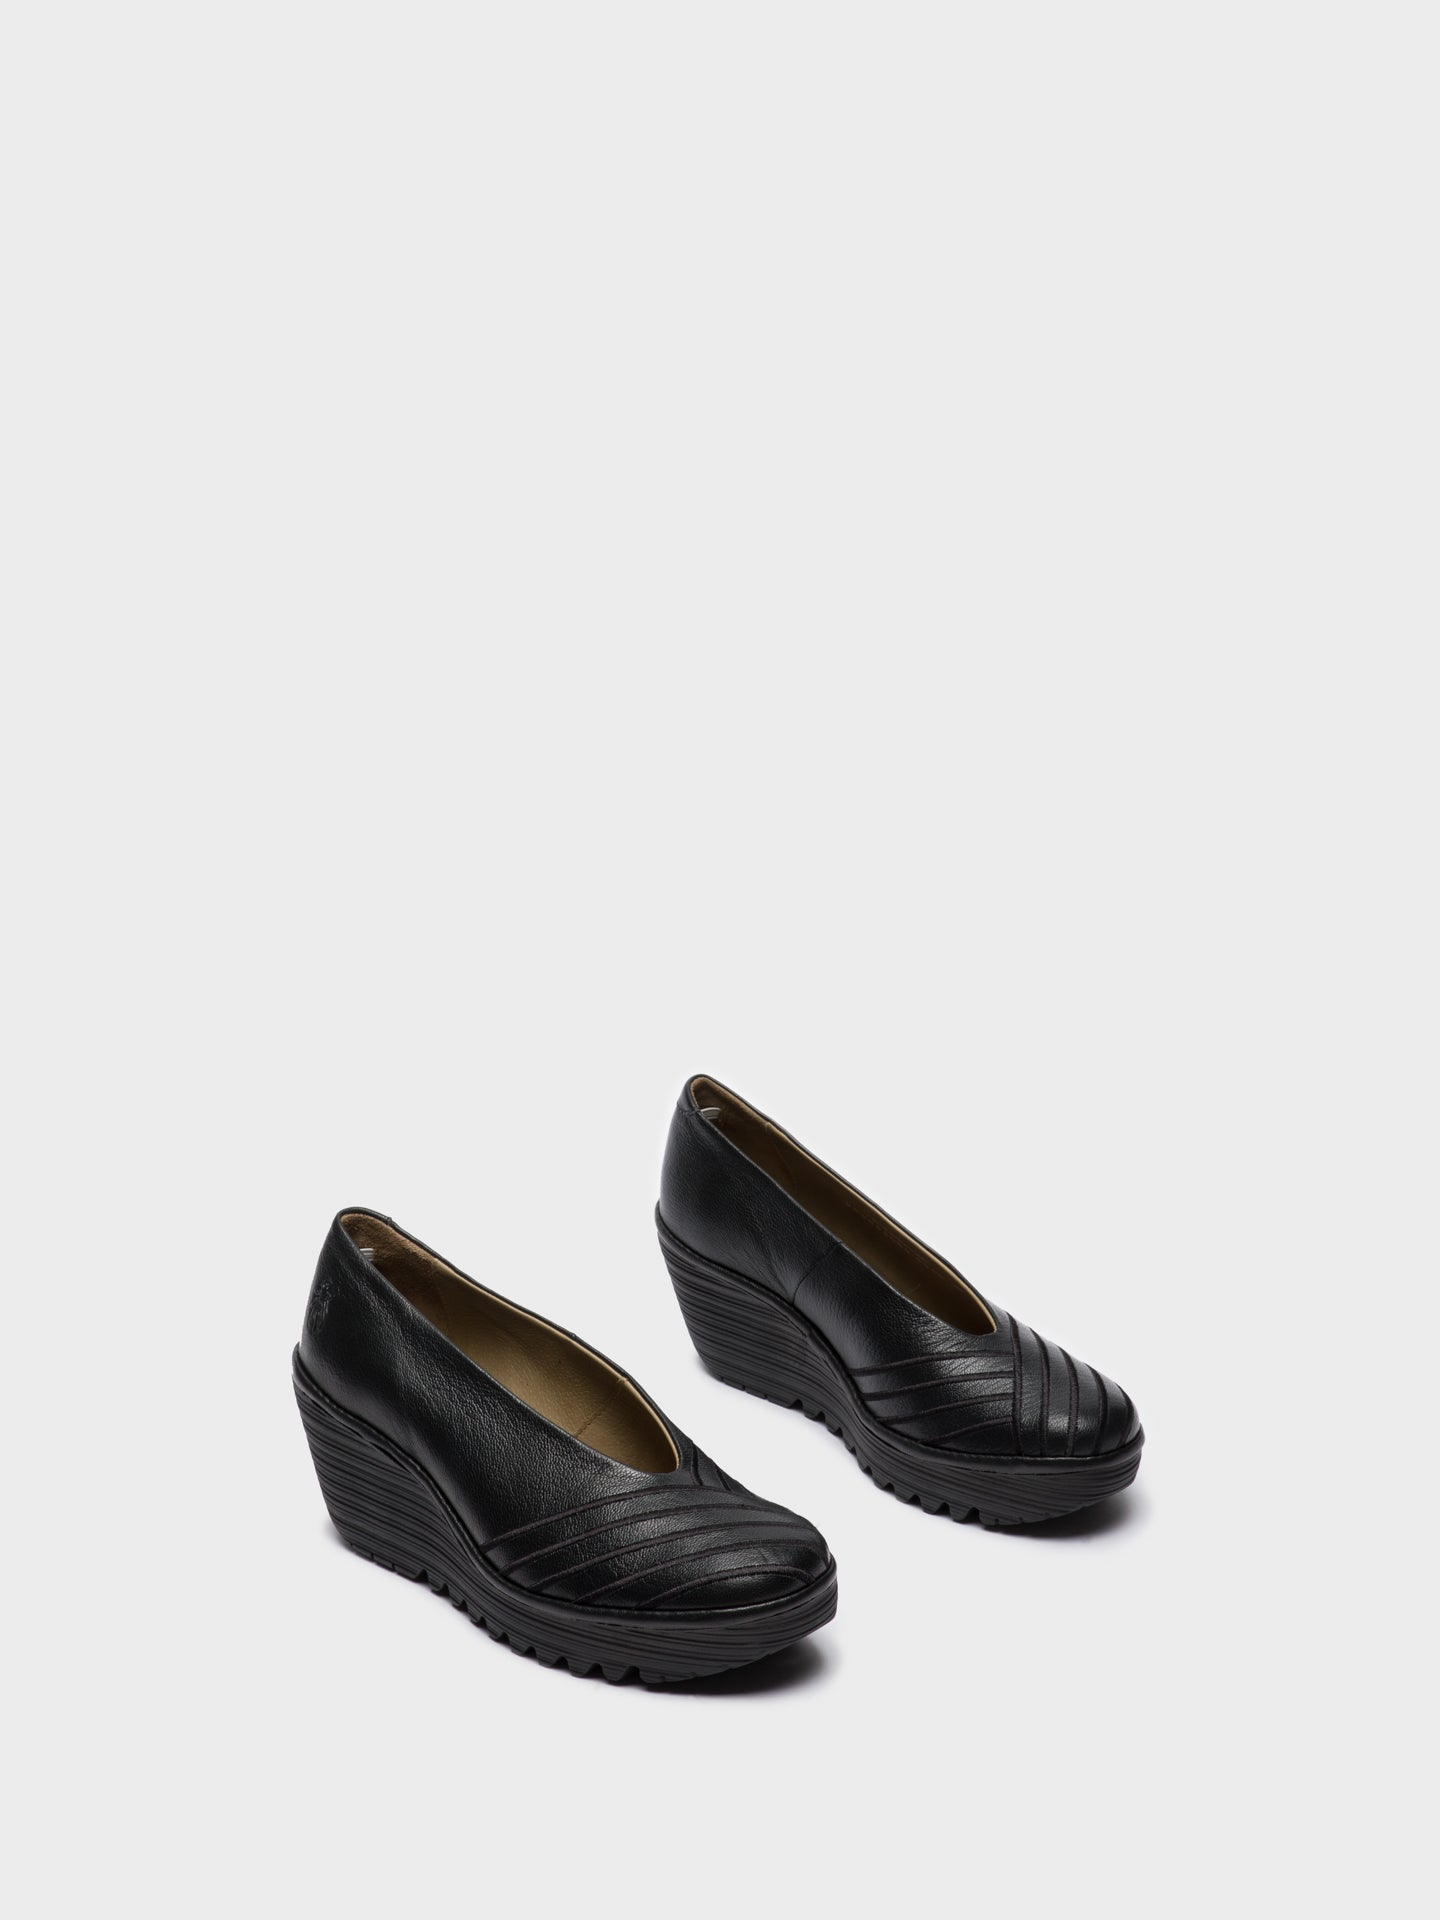 Fly London Black Round Toe Pumps